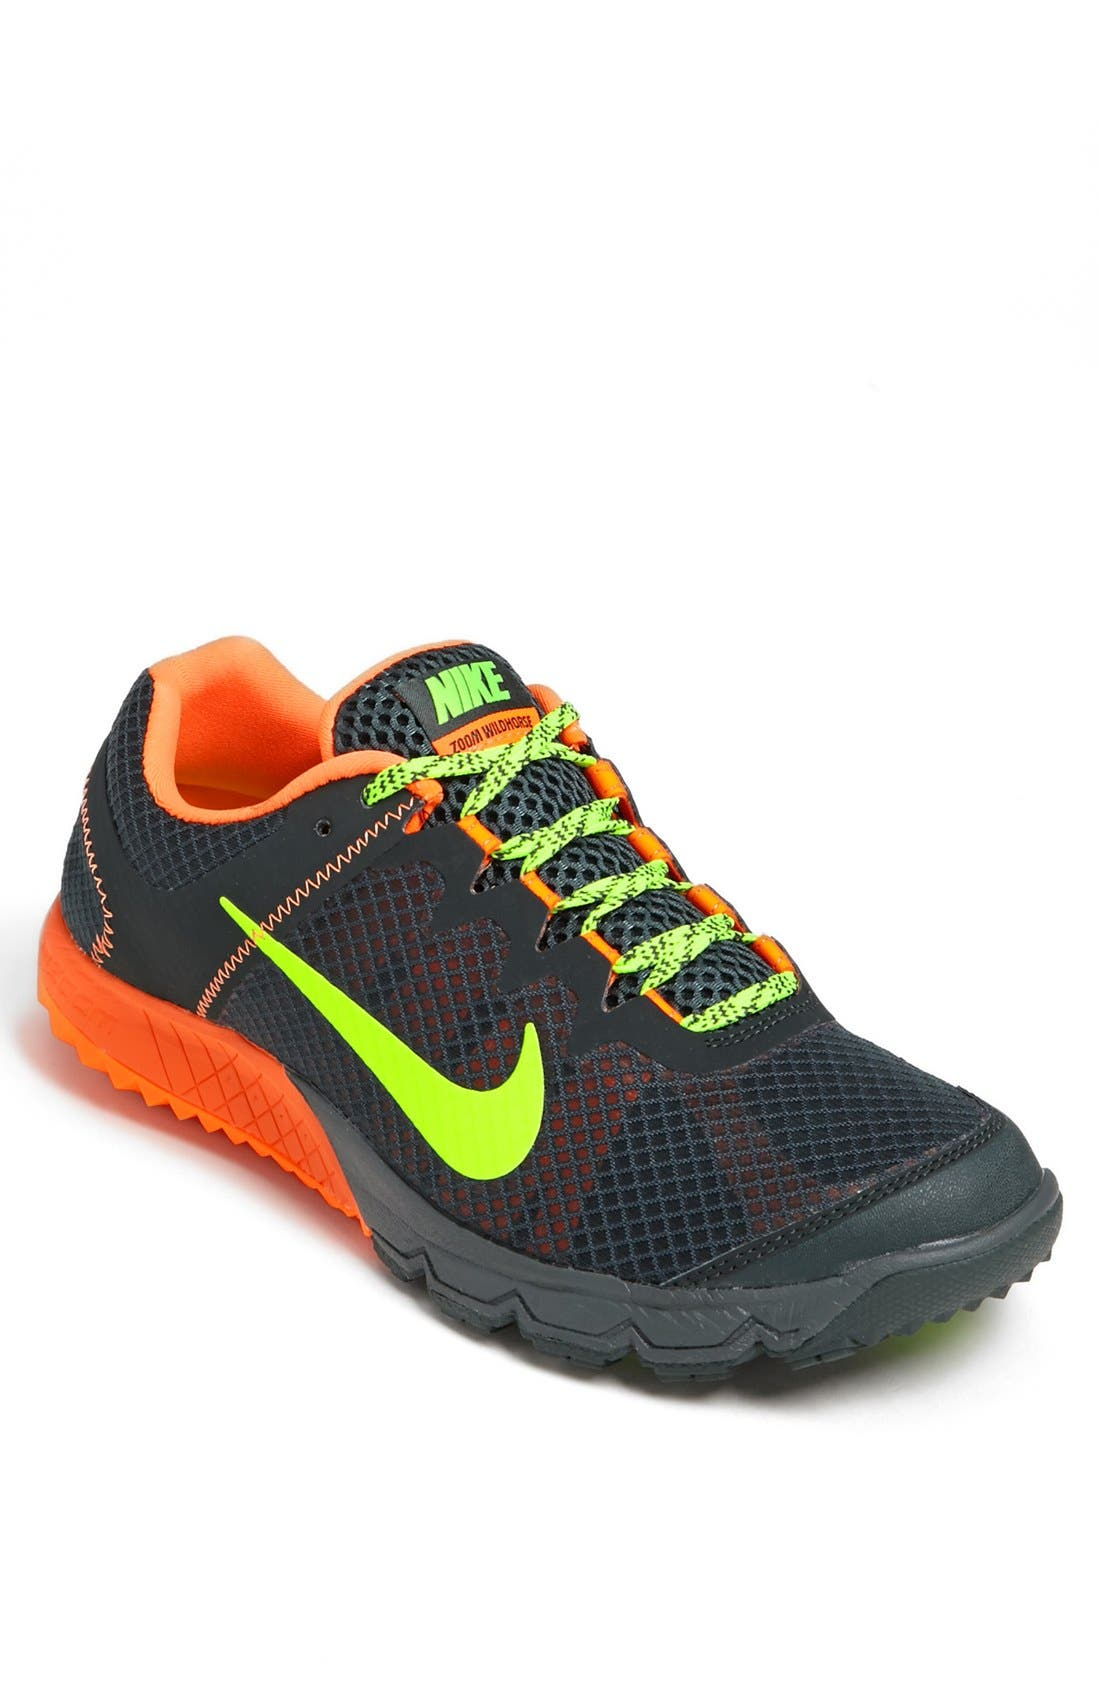 Alternate Image 1 Selected - Nike 'Zoom Wildhorse' Trail Running Shoe (Men)